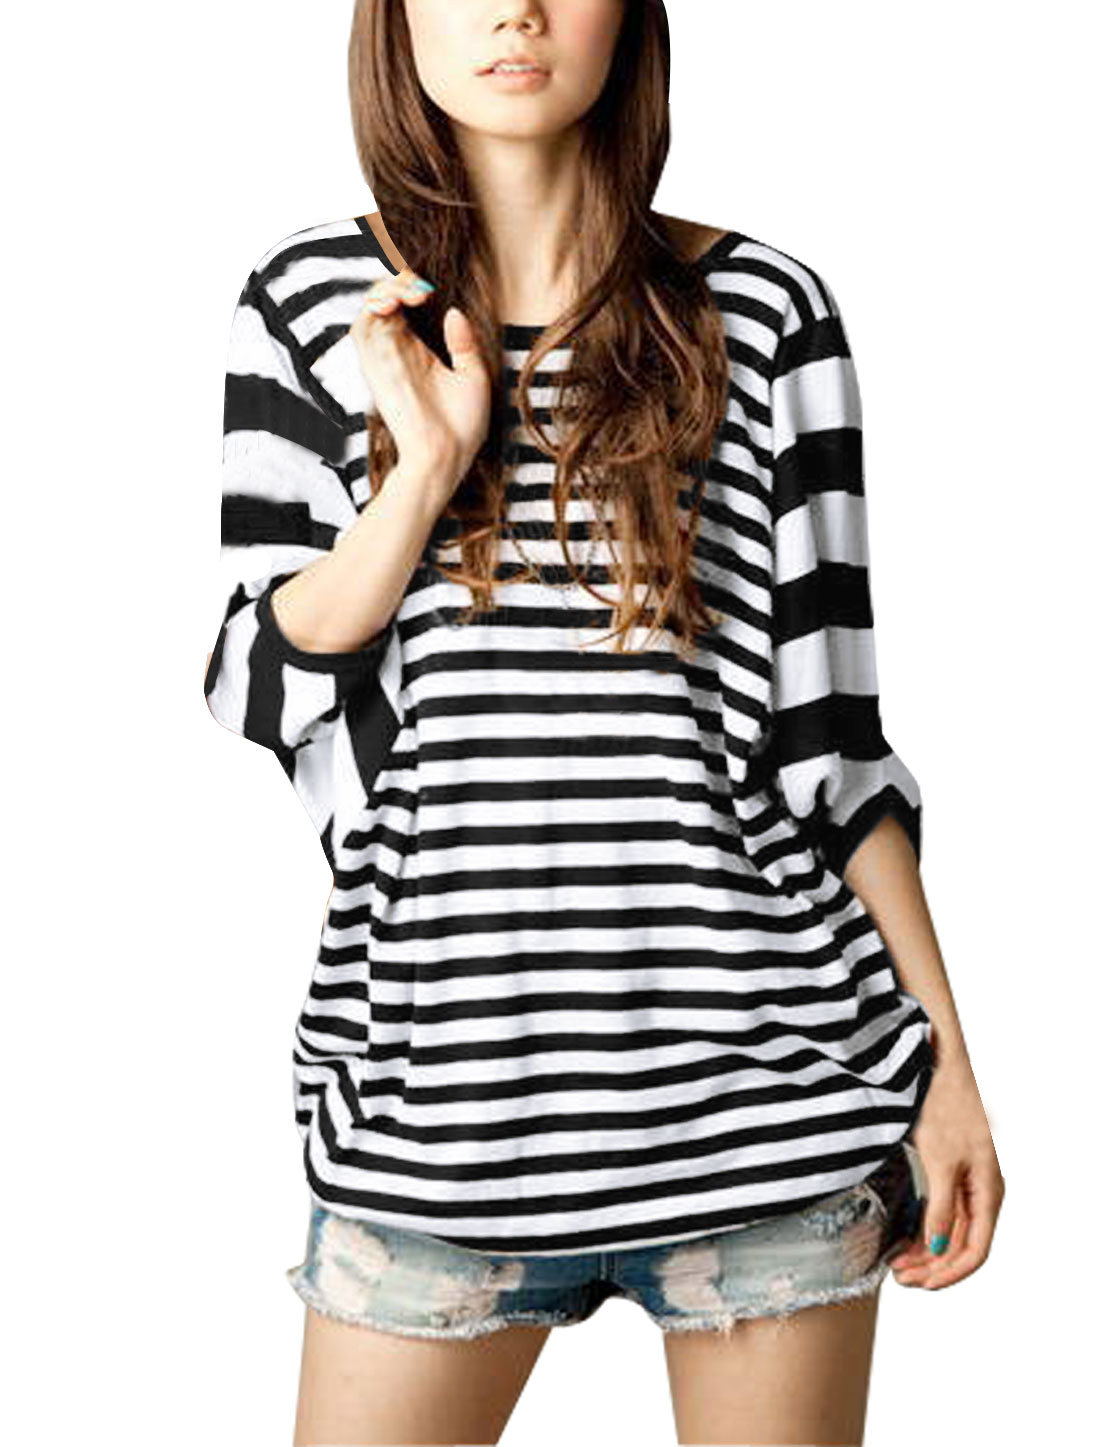 Ladies Scoop Neck 3/4 Sleeves Striped Tunic Top Shirt Black White XS